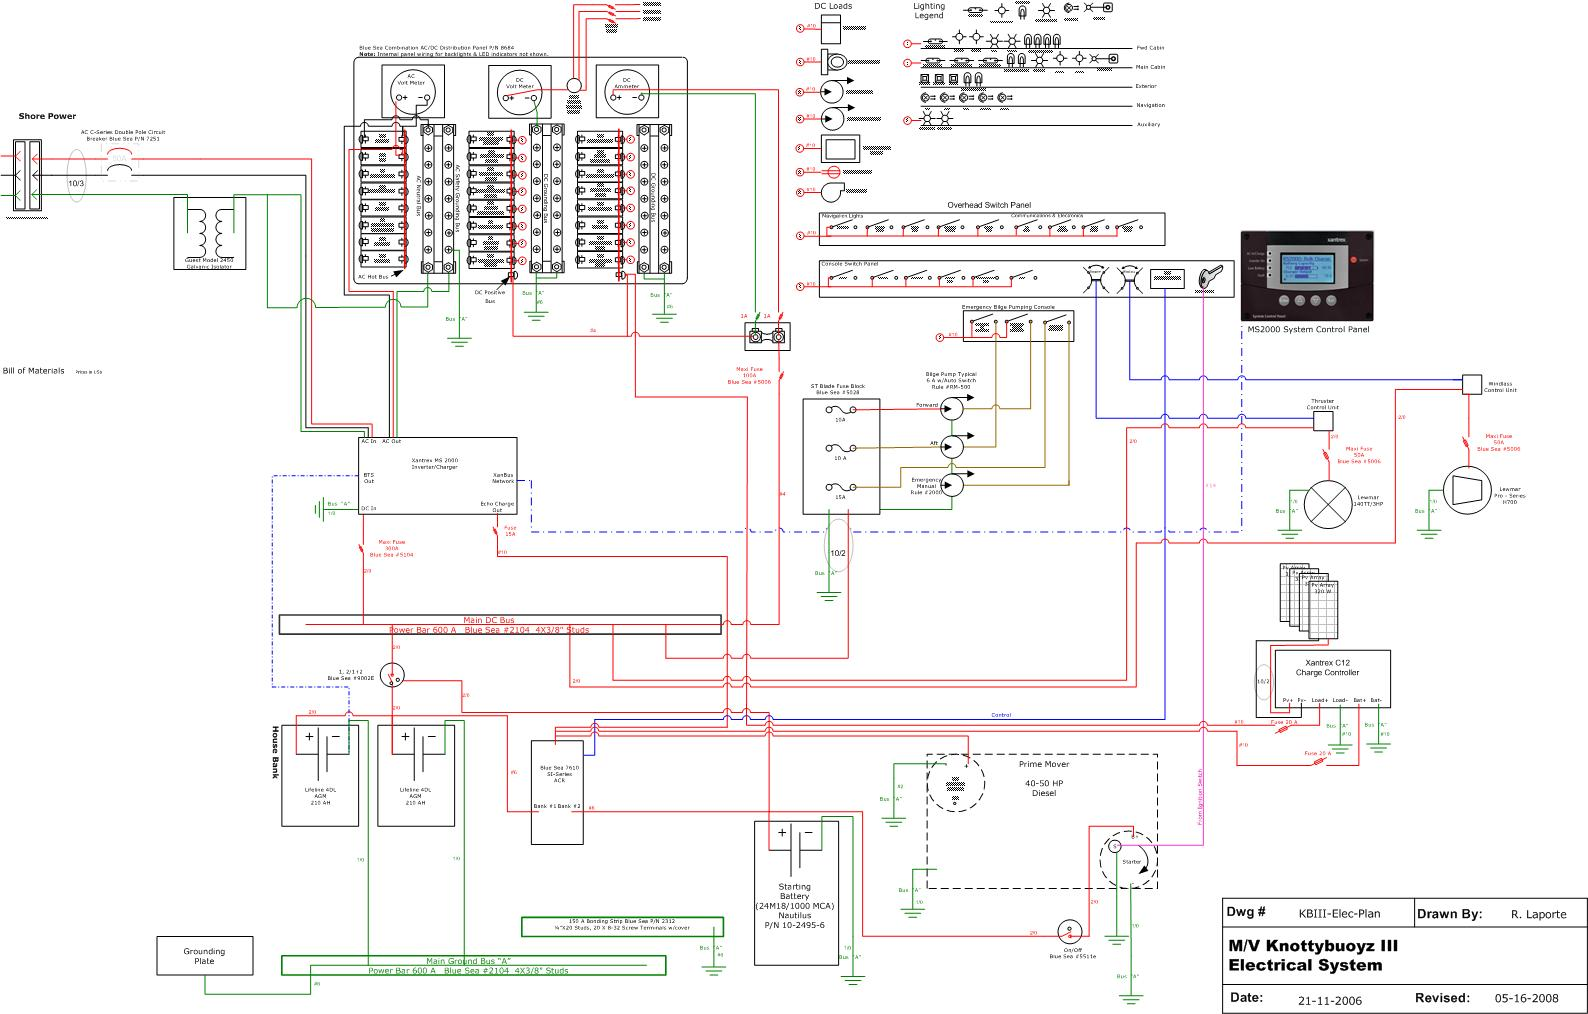 jeanneau wiring diagram new how to draw dfd diagram in visio 2010